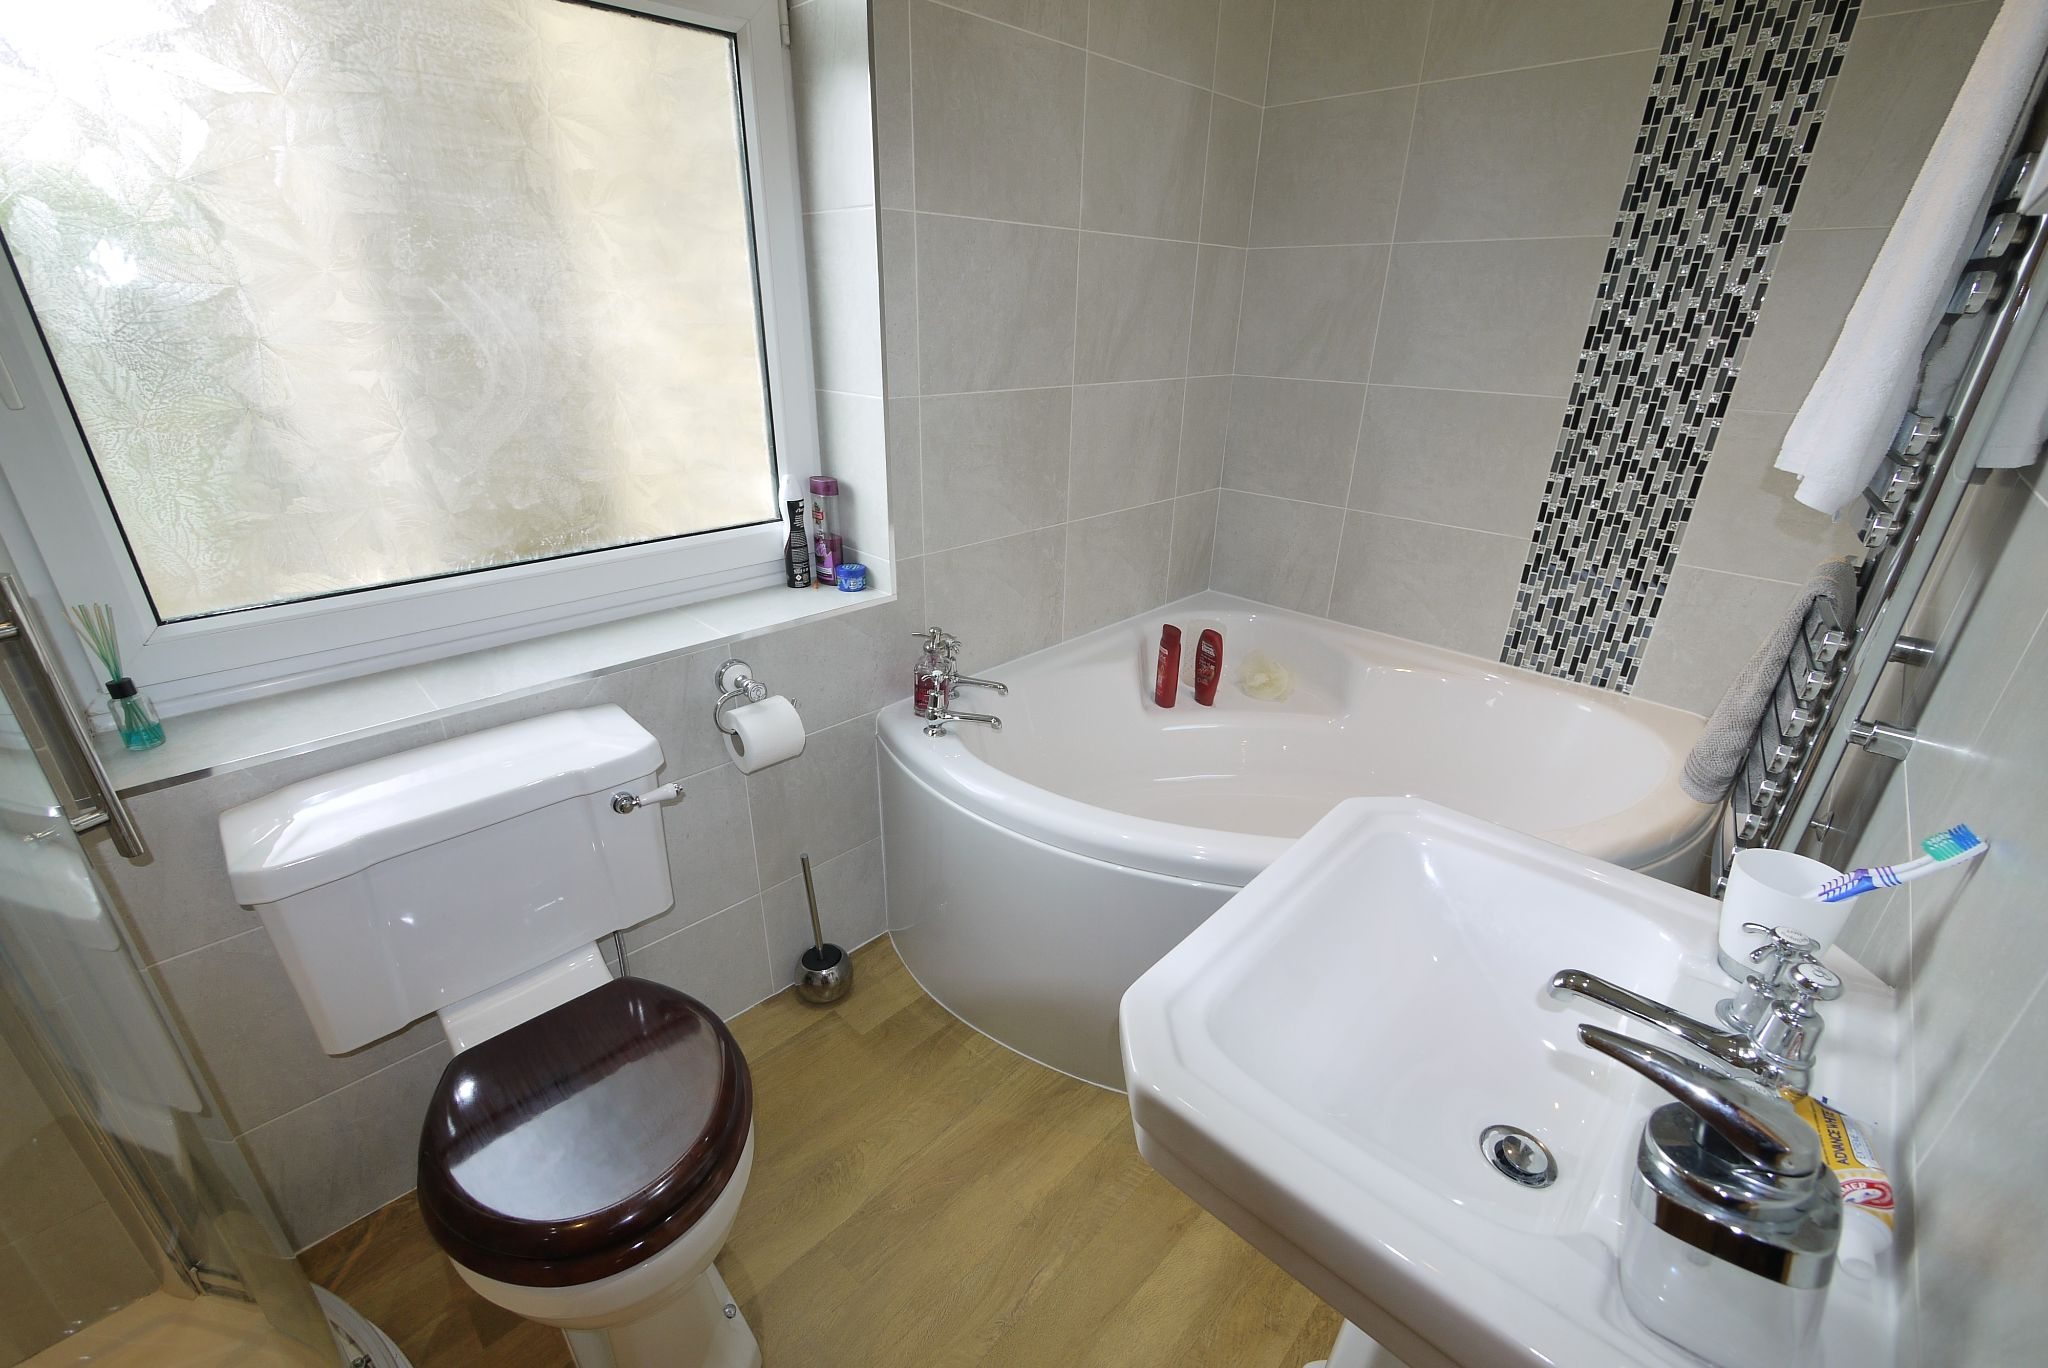 2 bedroom end terraced house SSTC in Brighouse - Bathroom 2.